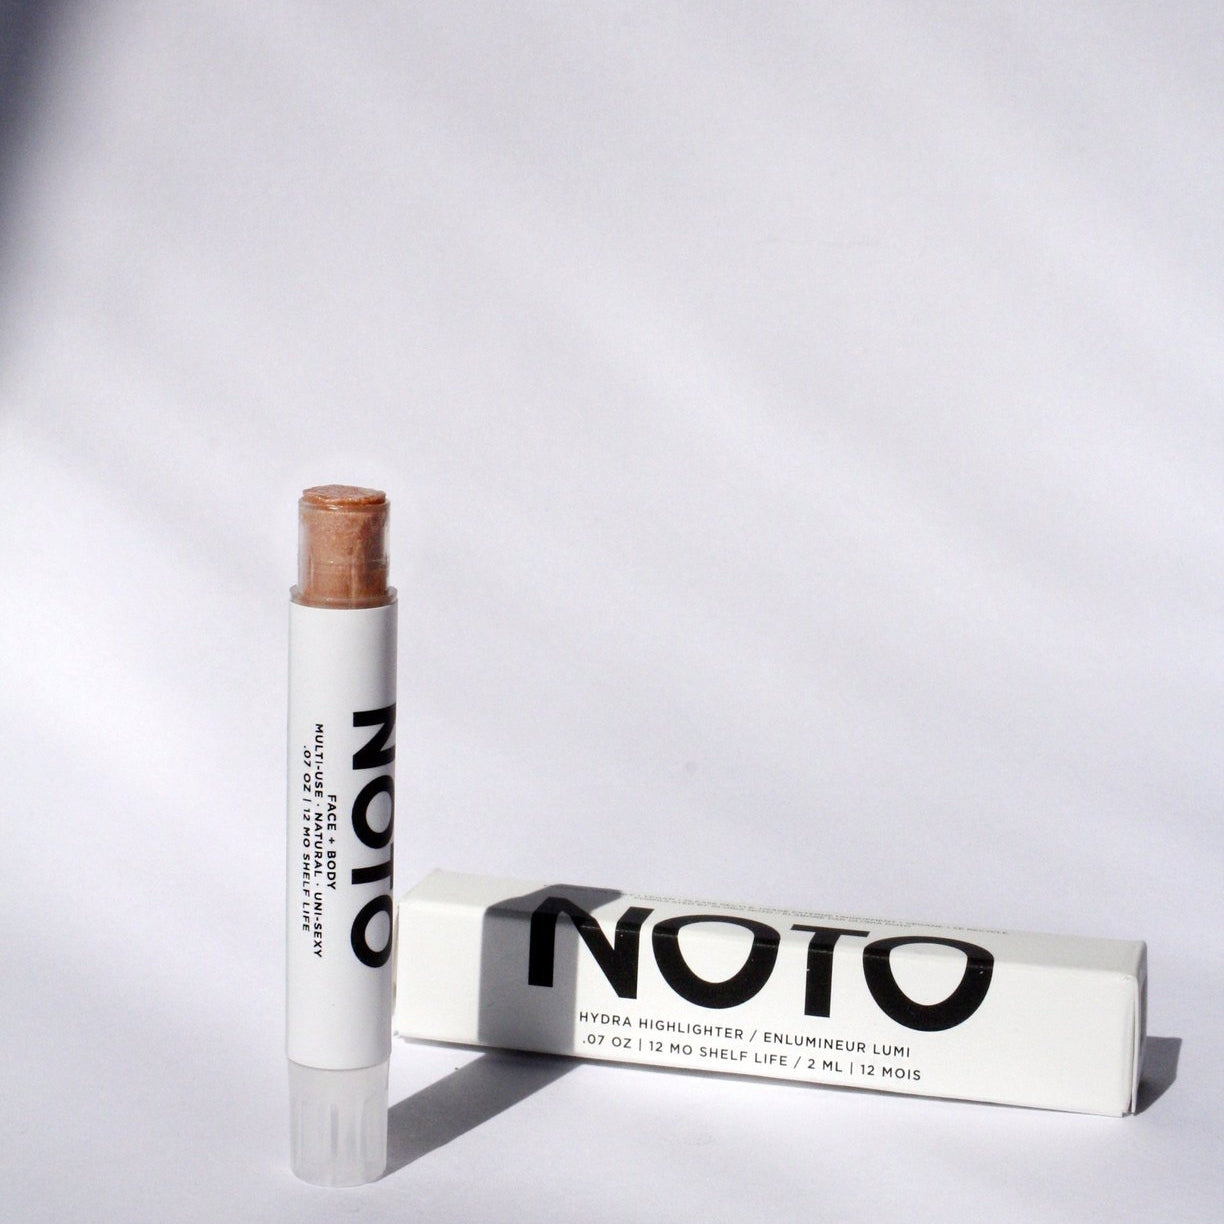 noto hydrater stick next to box container